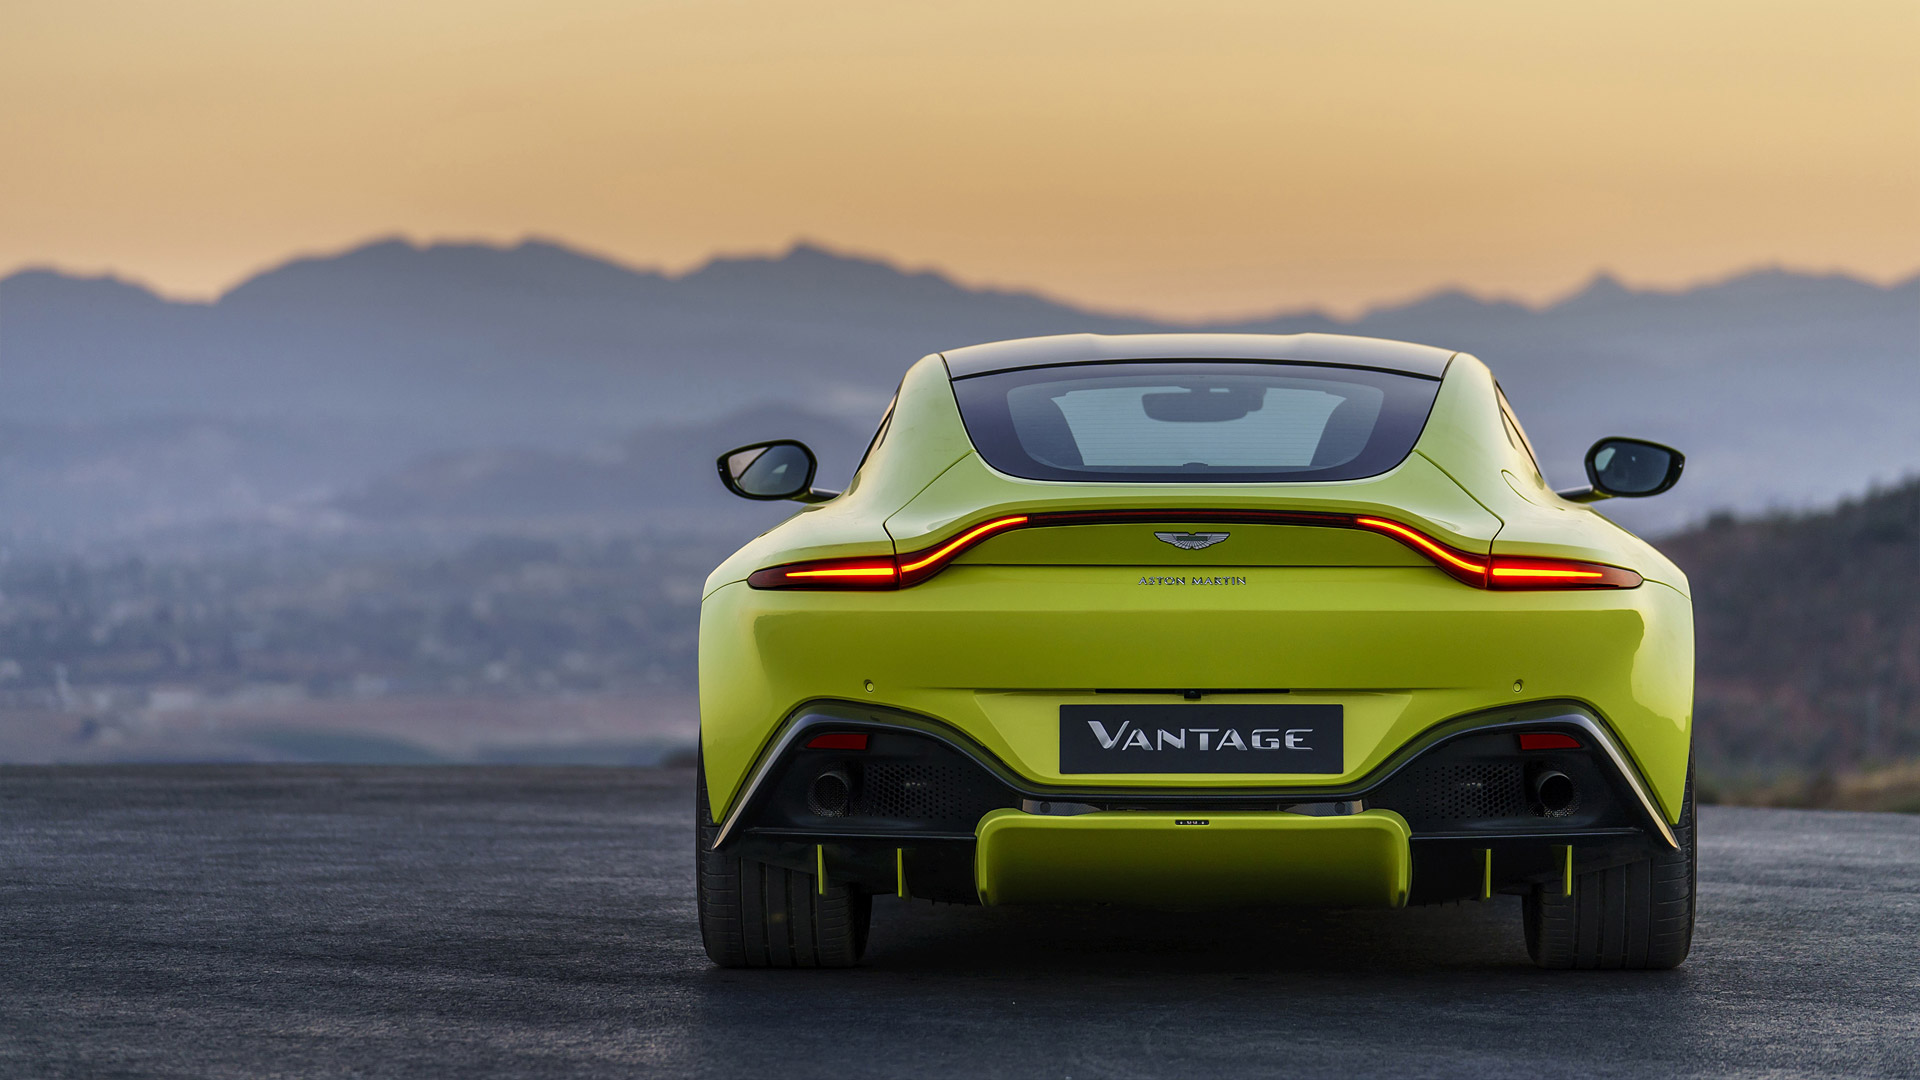 2019 Aston Martin Vantage 503 Bhp With Twin Turbo Housed On An Amg